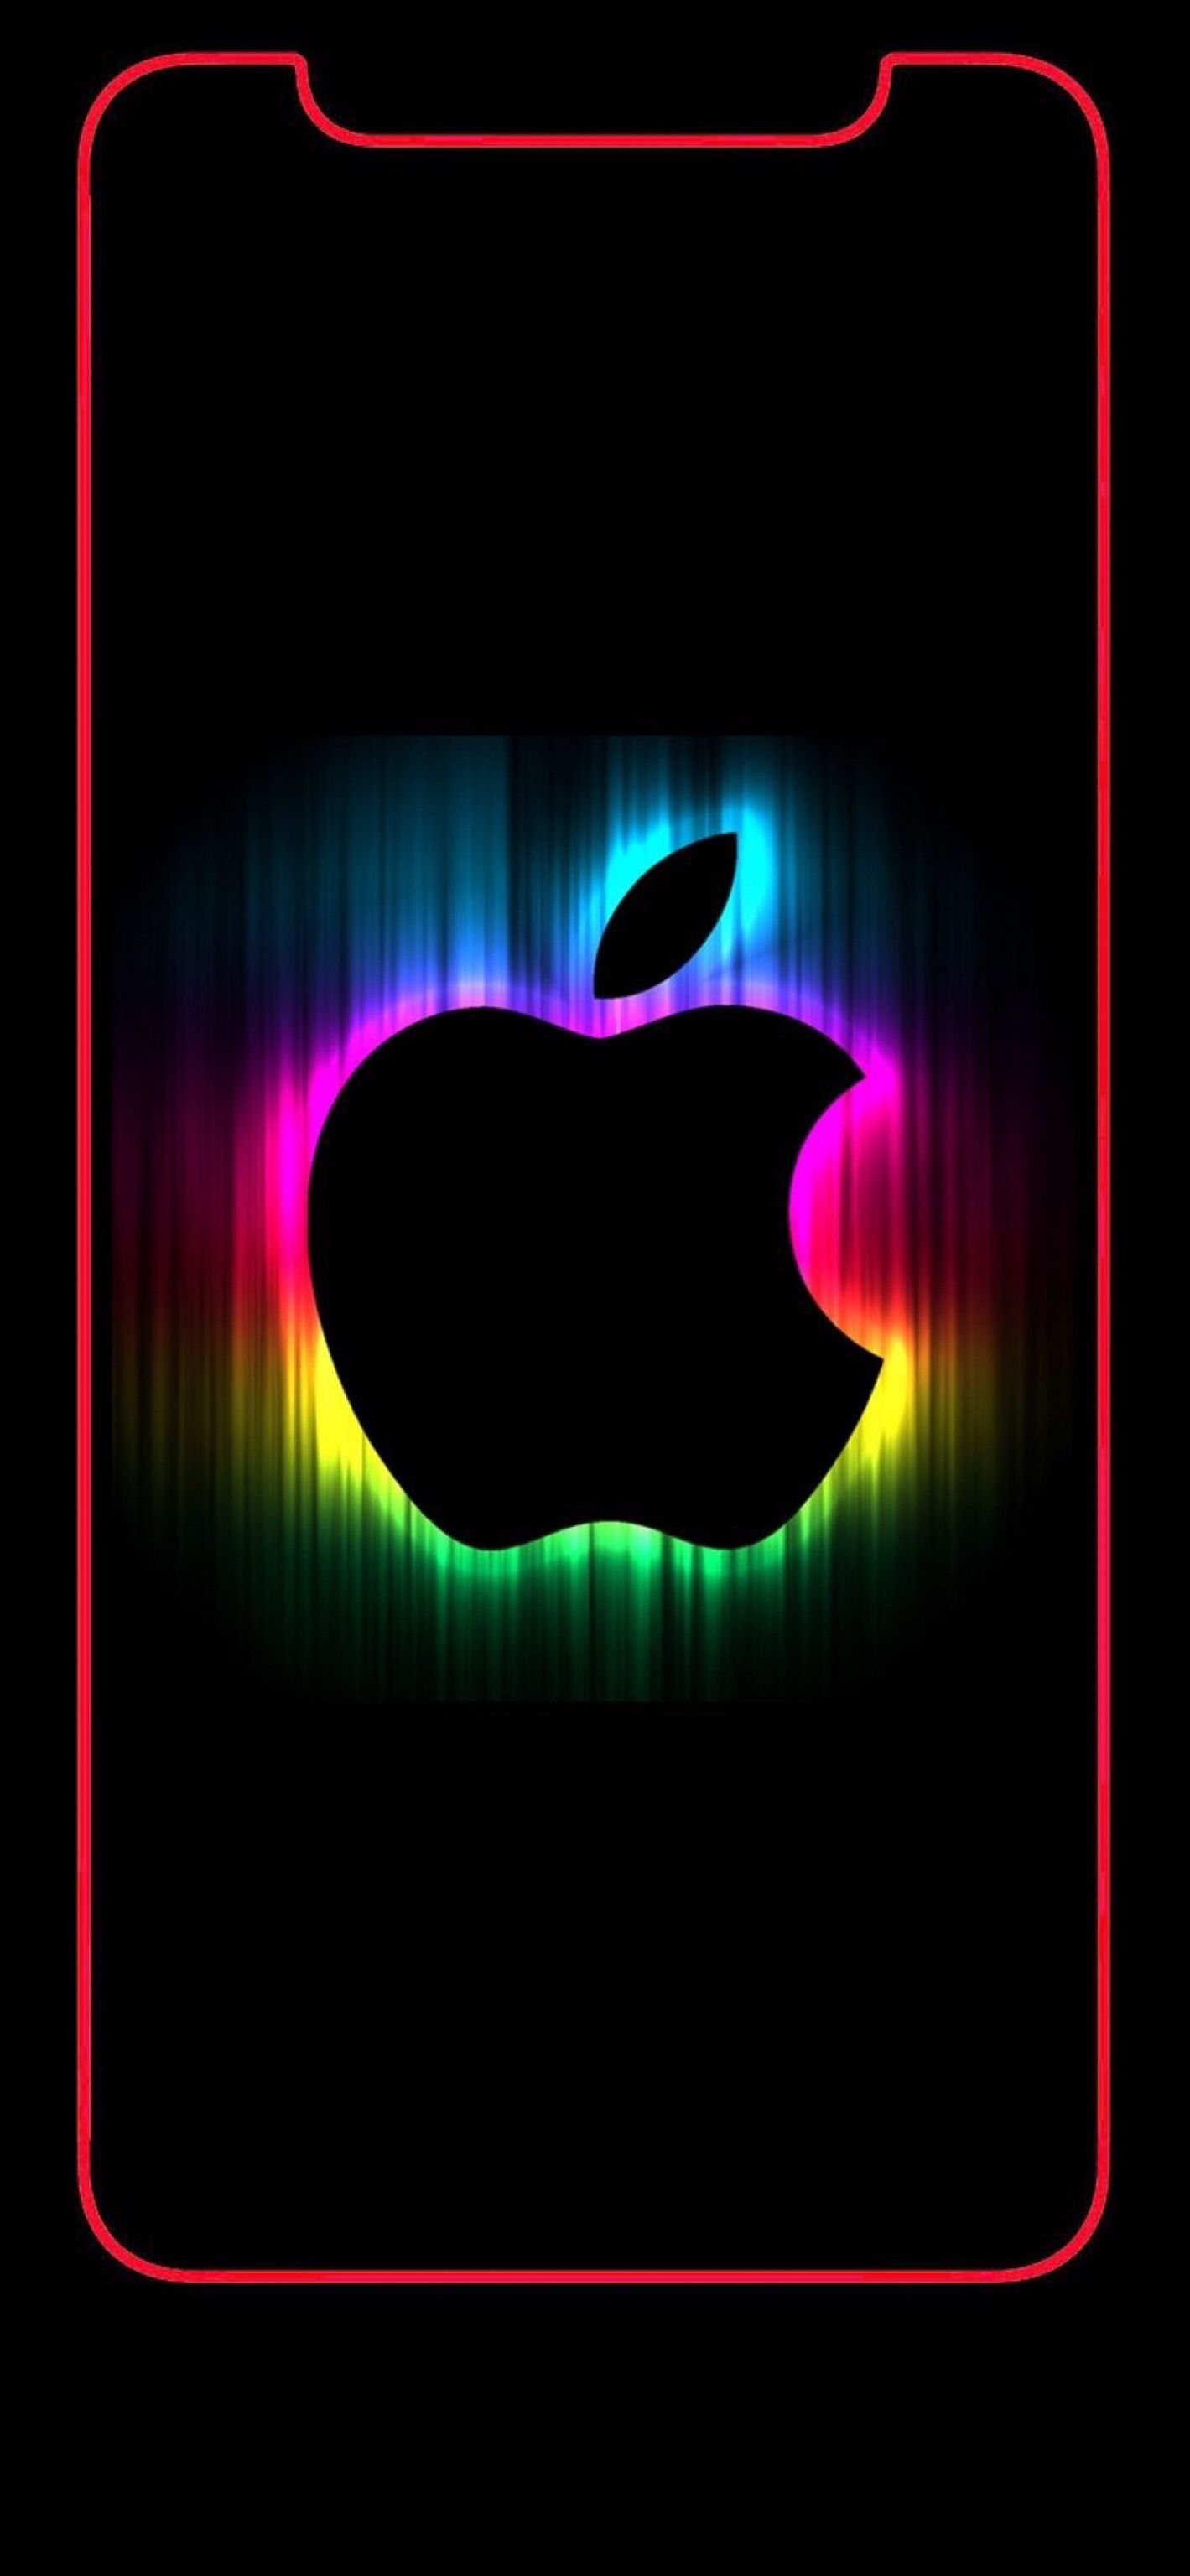 Wallpaper Iphone X Apple Logo Rainbow 2 Apple Logo Wallpaper Iphone Iphone Homescreen Wallpaper Apple Wallpaper